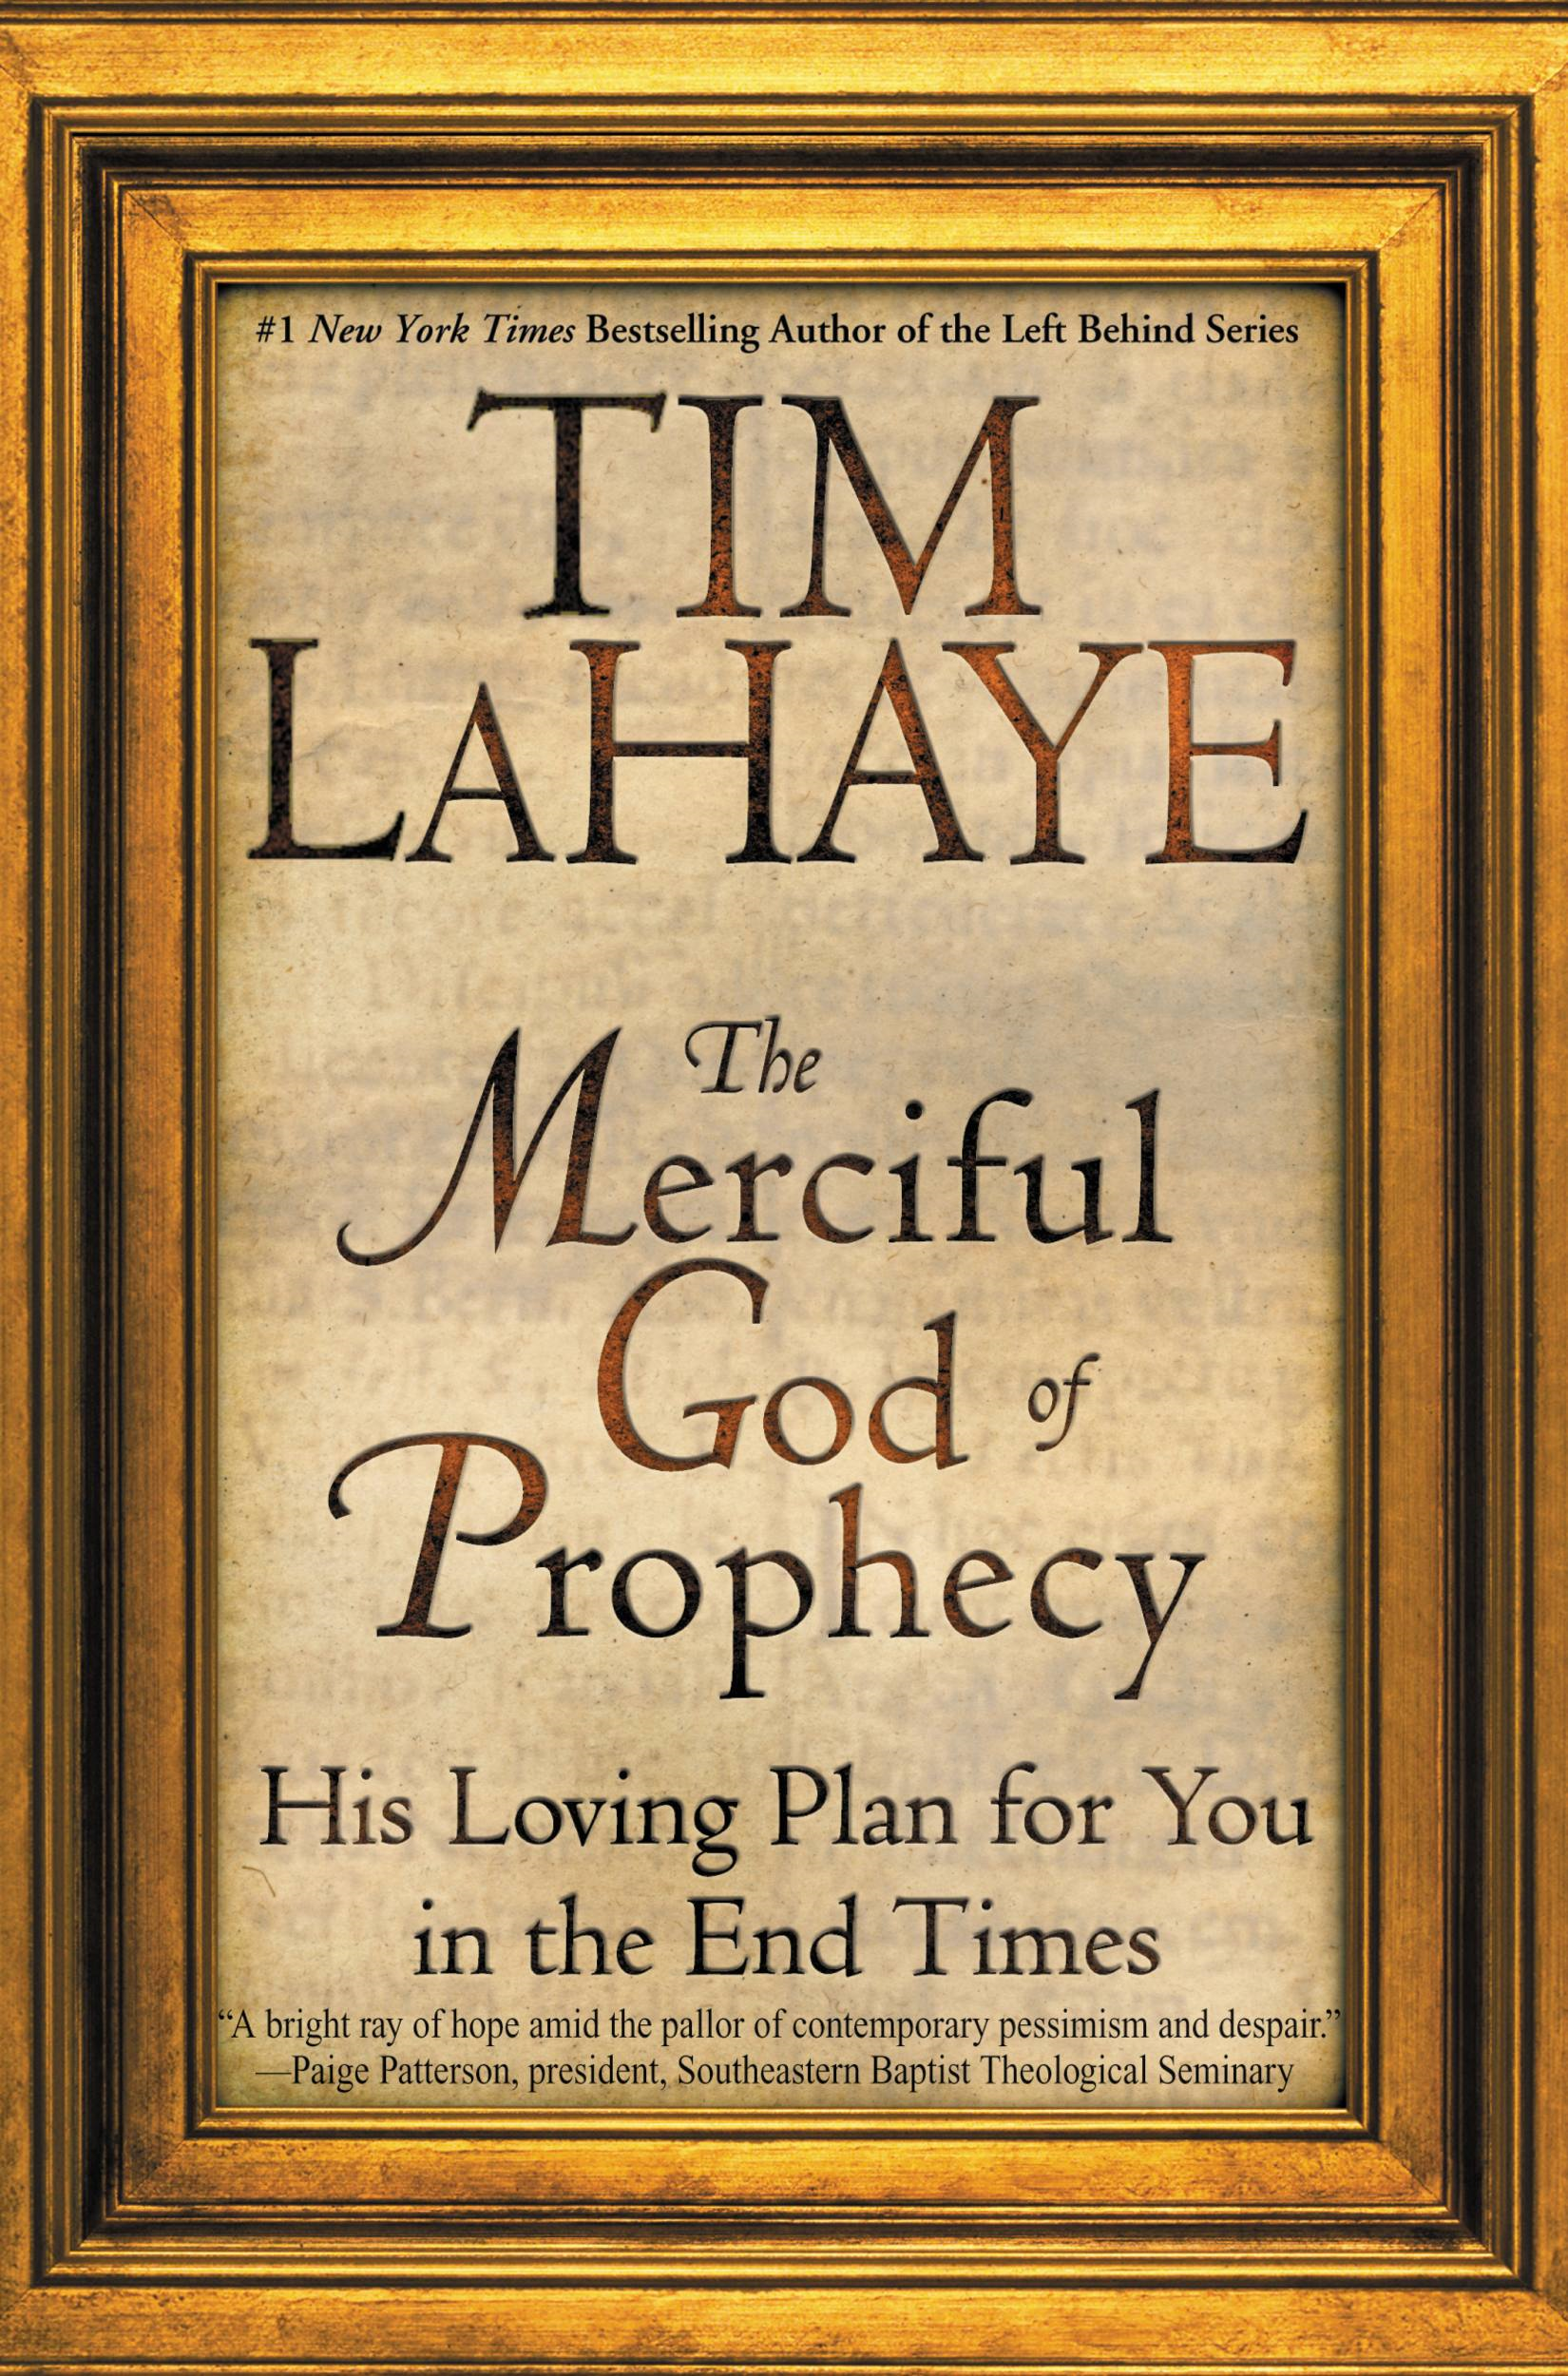 The Merciful God of Prophecy By: Tim LaHaye